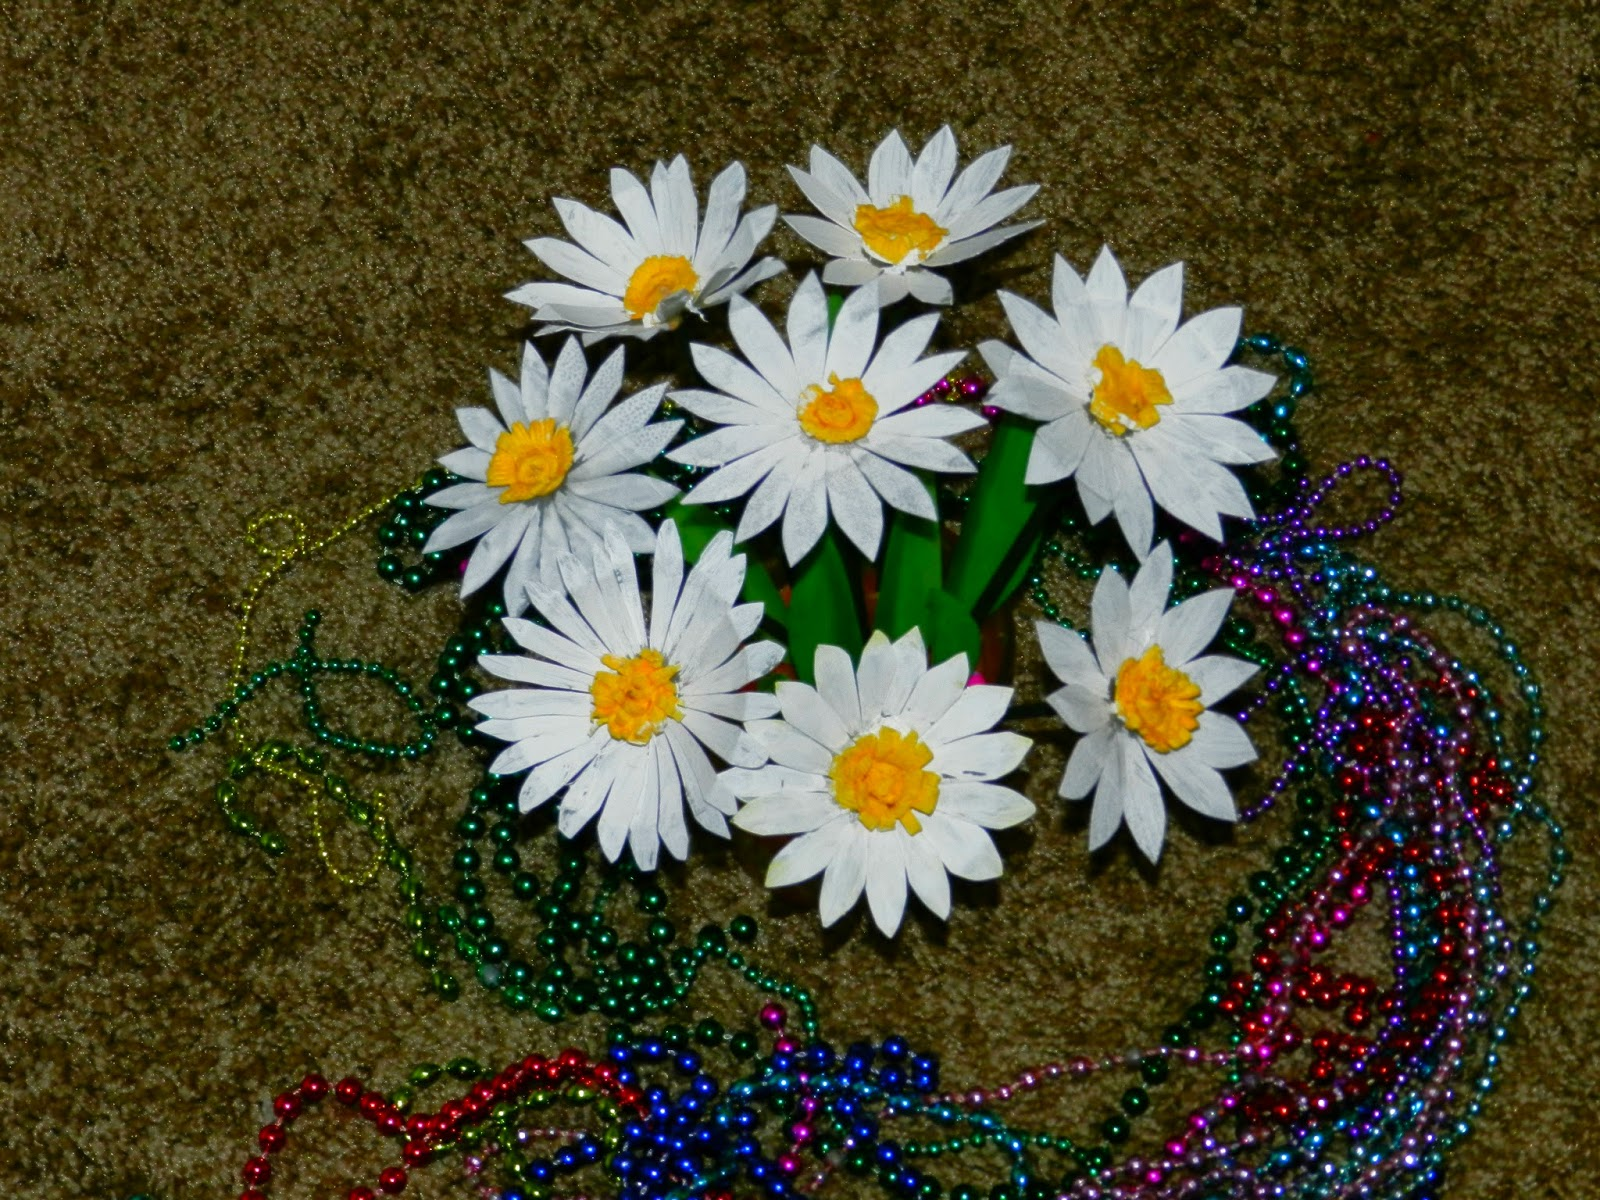 Creative Diy Crafts Recycled Diy Daisy Flowers With Waste Plastic